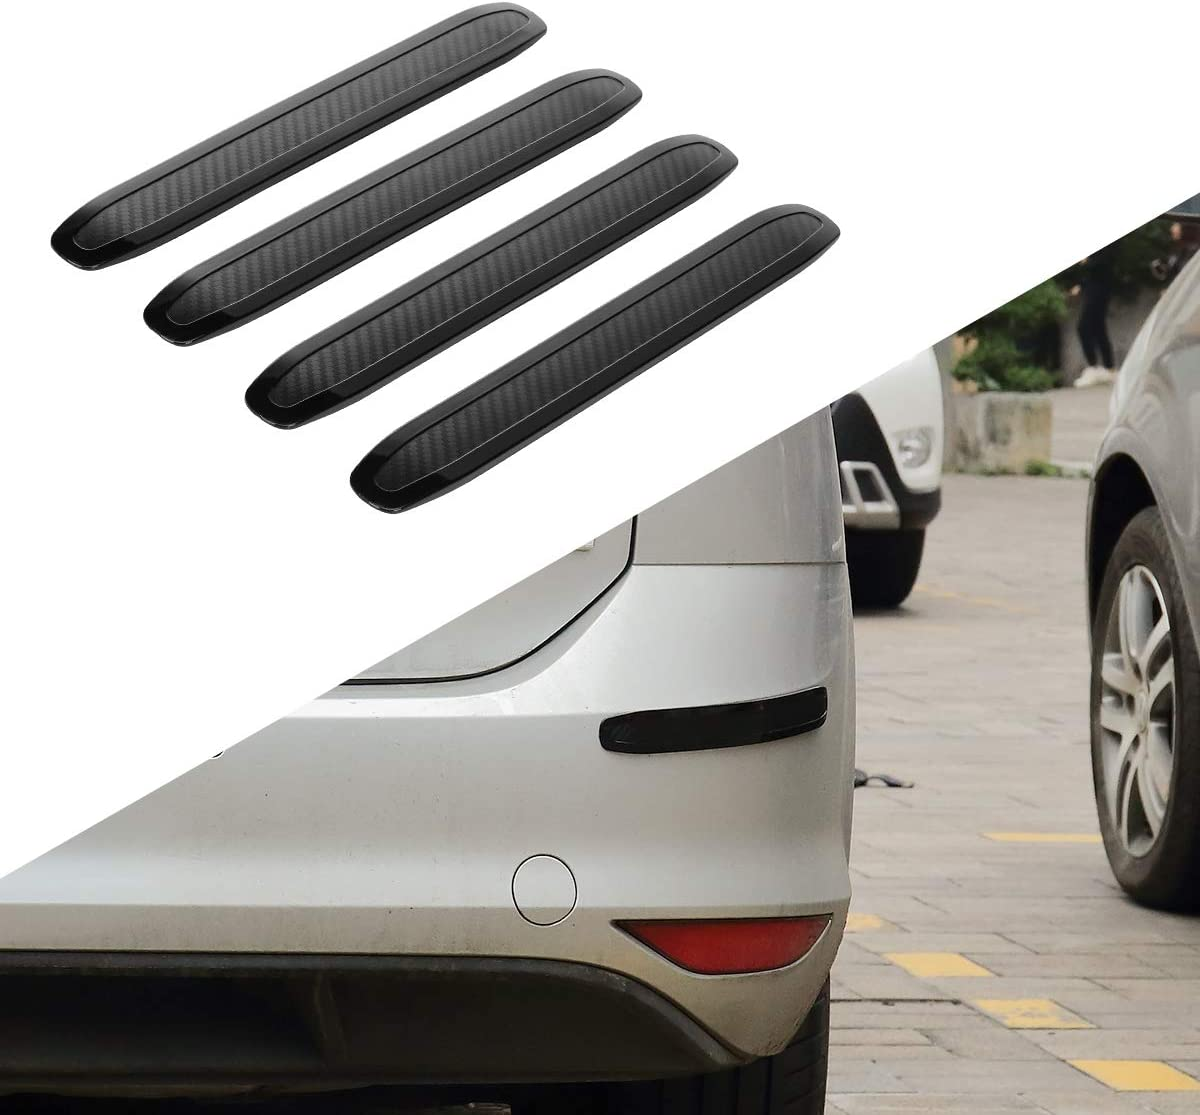 runmade Universal Black Car Bumper Protector Guard Patch Front /& Rear Bumper Guard Strip Trim for Cars SUV Pickup Truck 2 Pack